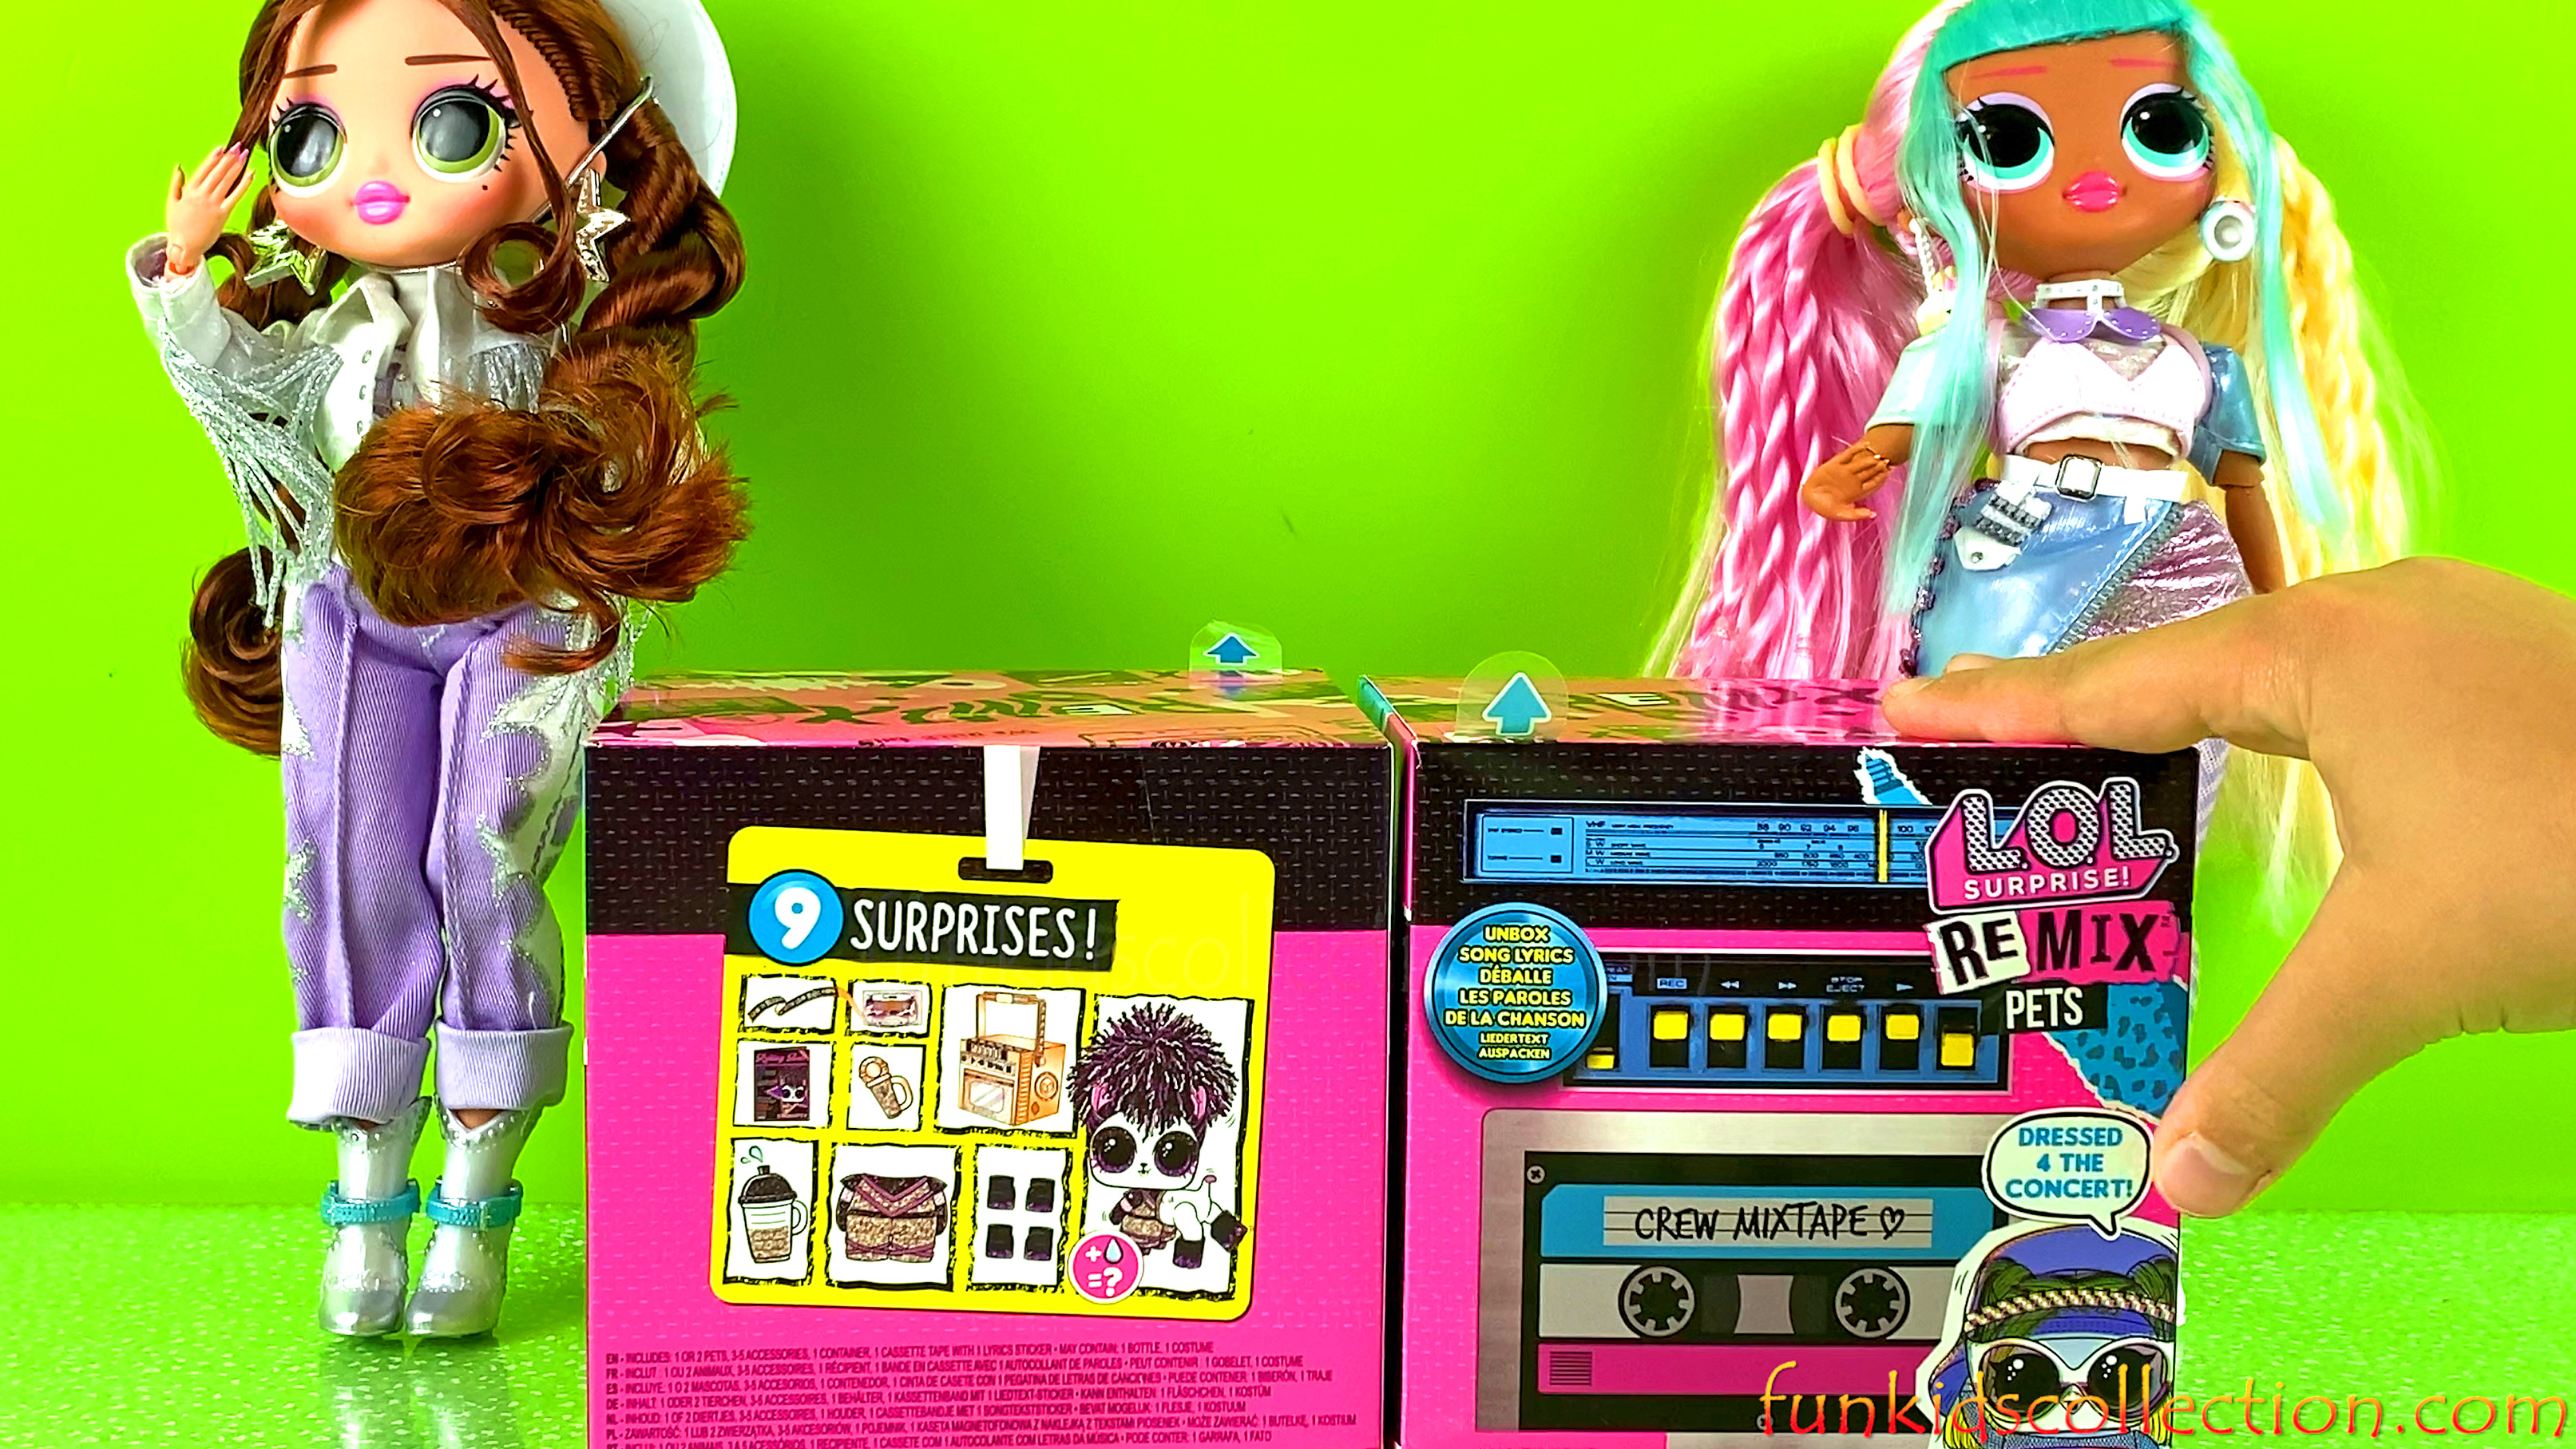 Lol Surprise Remix Pets | Unboxing LOL Surprise Remix Series & LOL Surprise Boombox | EBD Toys